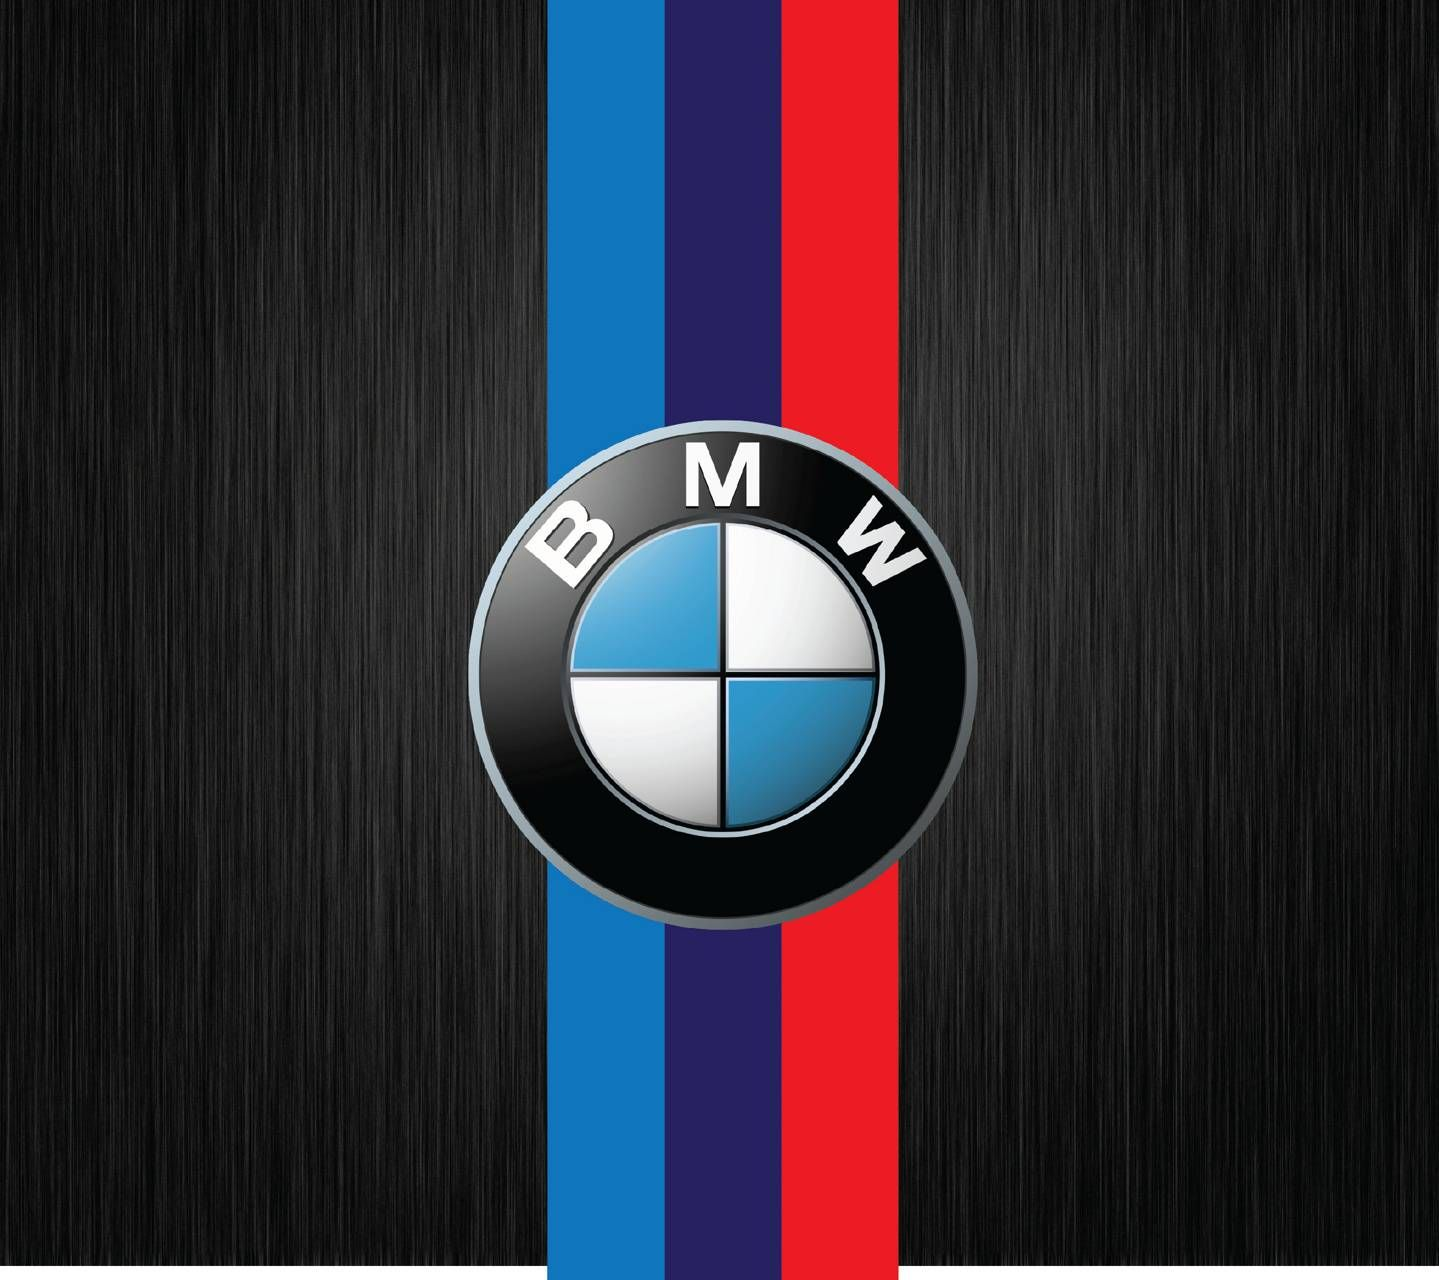 Download Bmw Logo Wallpaper By Jamesluce2 5a Free On Zedge Now Browse Millions Of Popular Bmw Wallpapers And Ringtones On Zedge And Bmw Logo Bmw Bmw Art